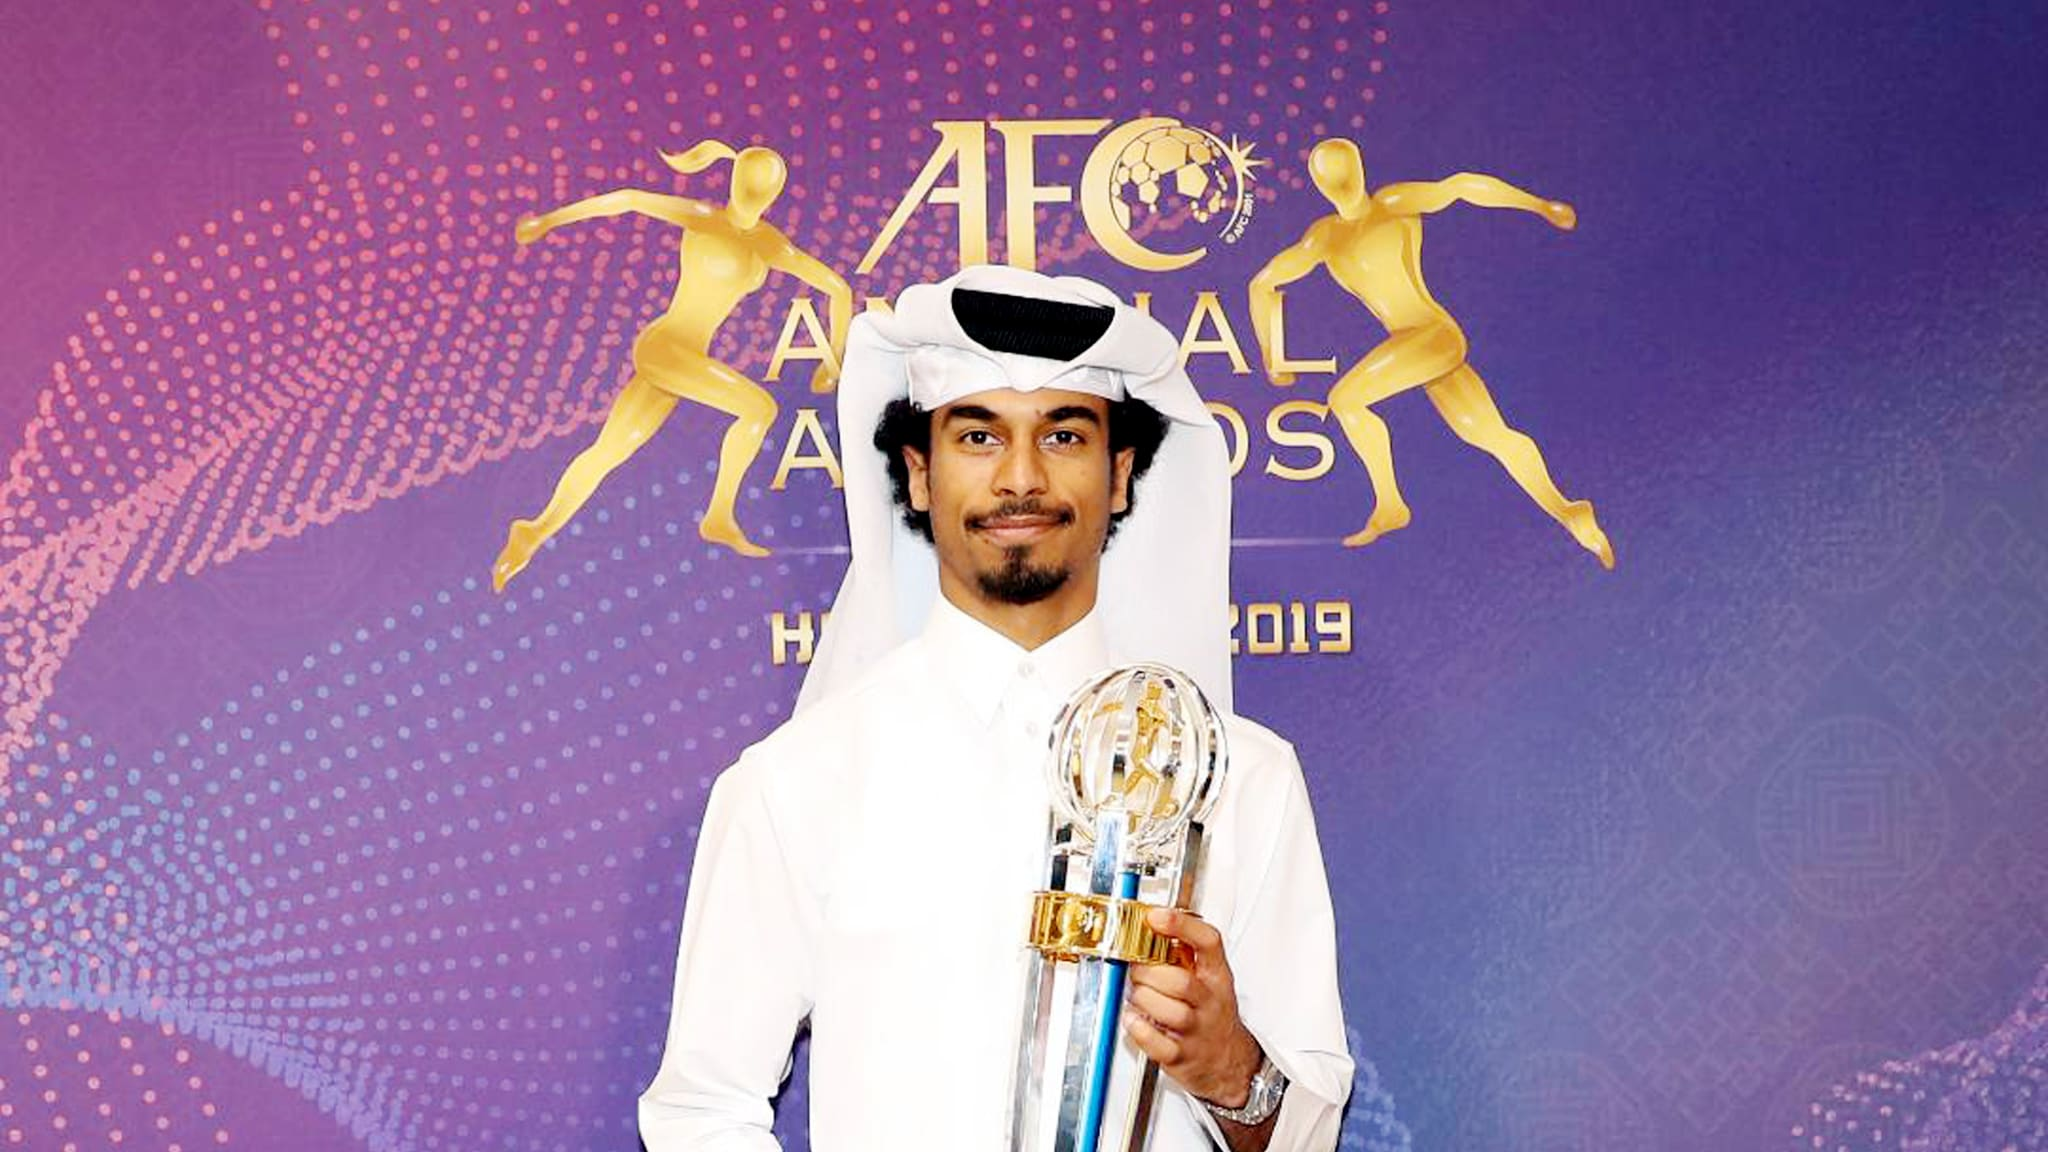 AFC Player of the Year 2019 Qatari star Akram Afif